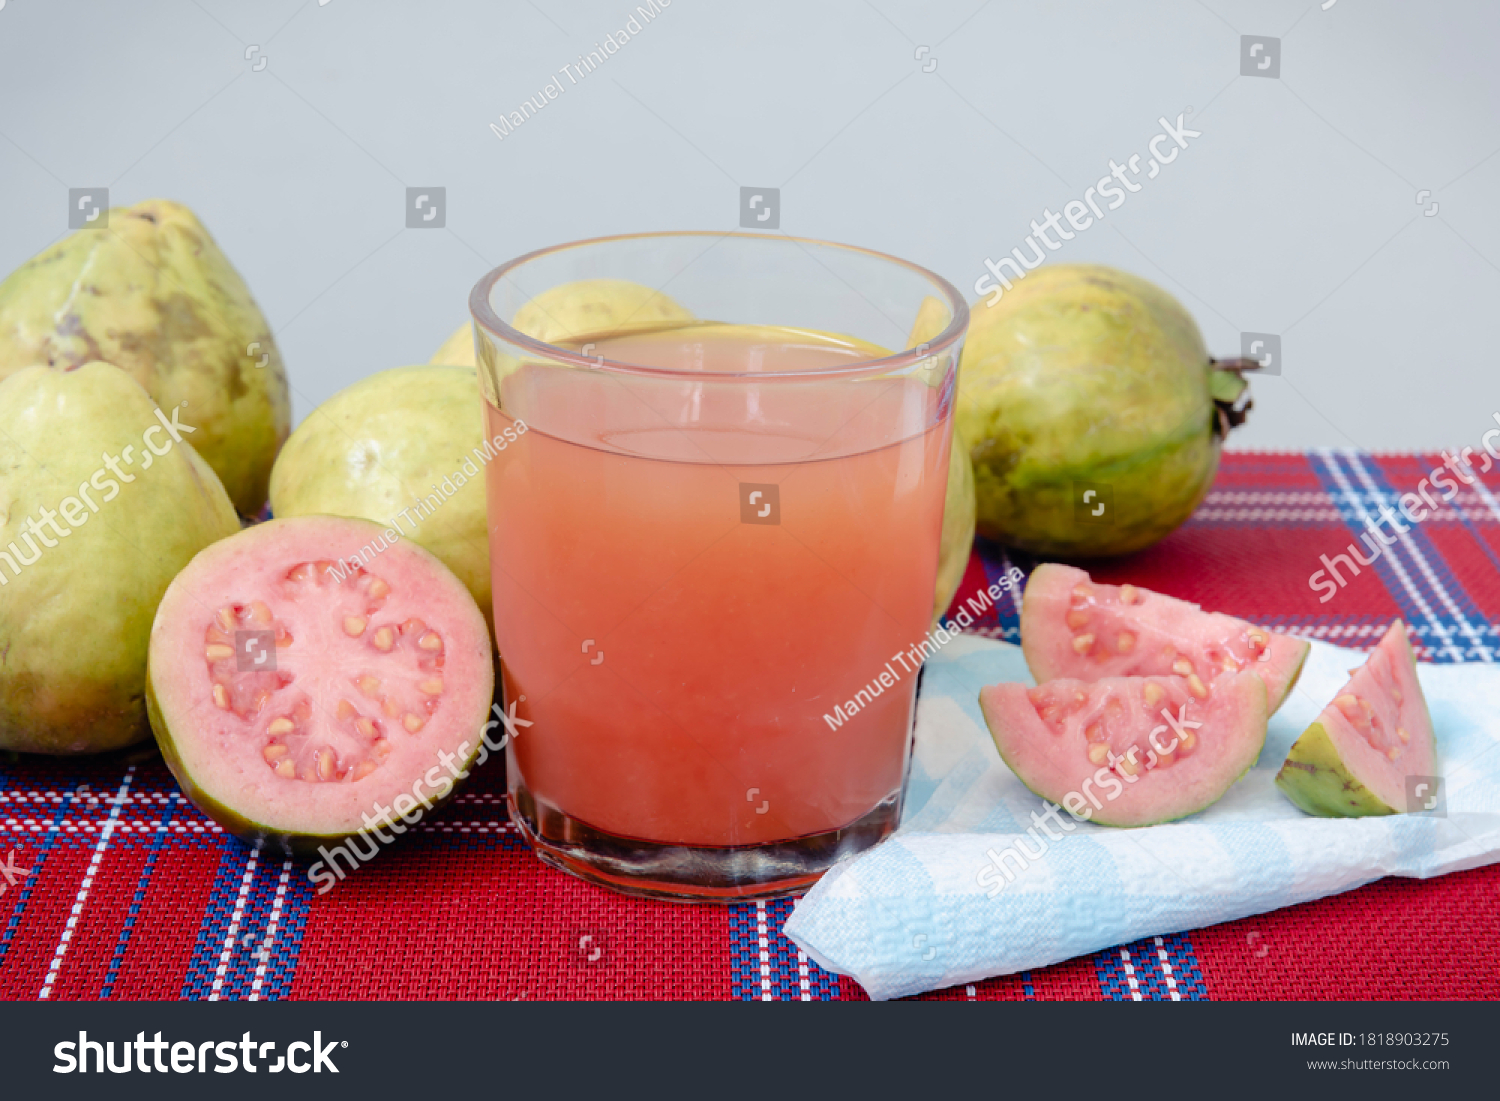 stock-photo-glass-of-guava-juice-next-to